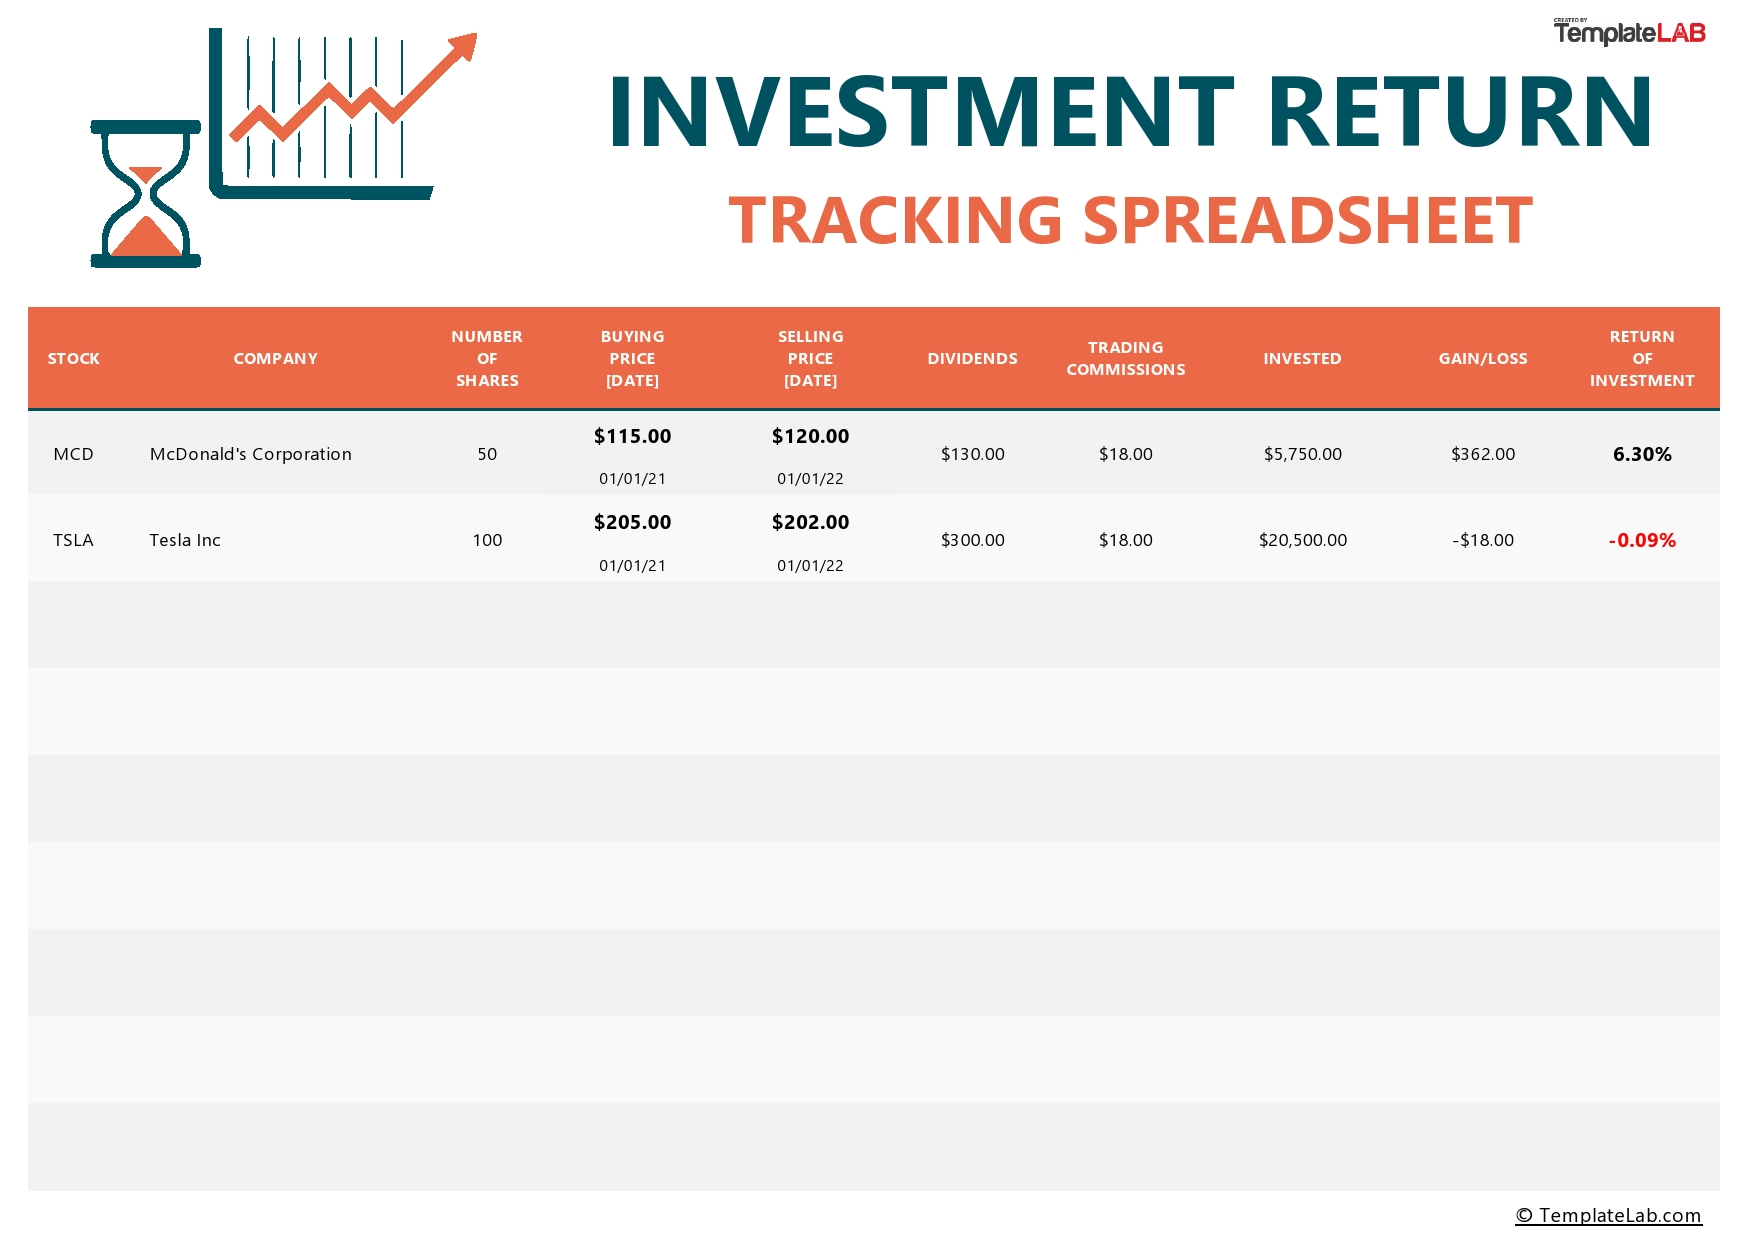 Free Investment Return Tracking Spreadsheet - TemplateLab.com